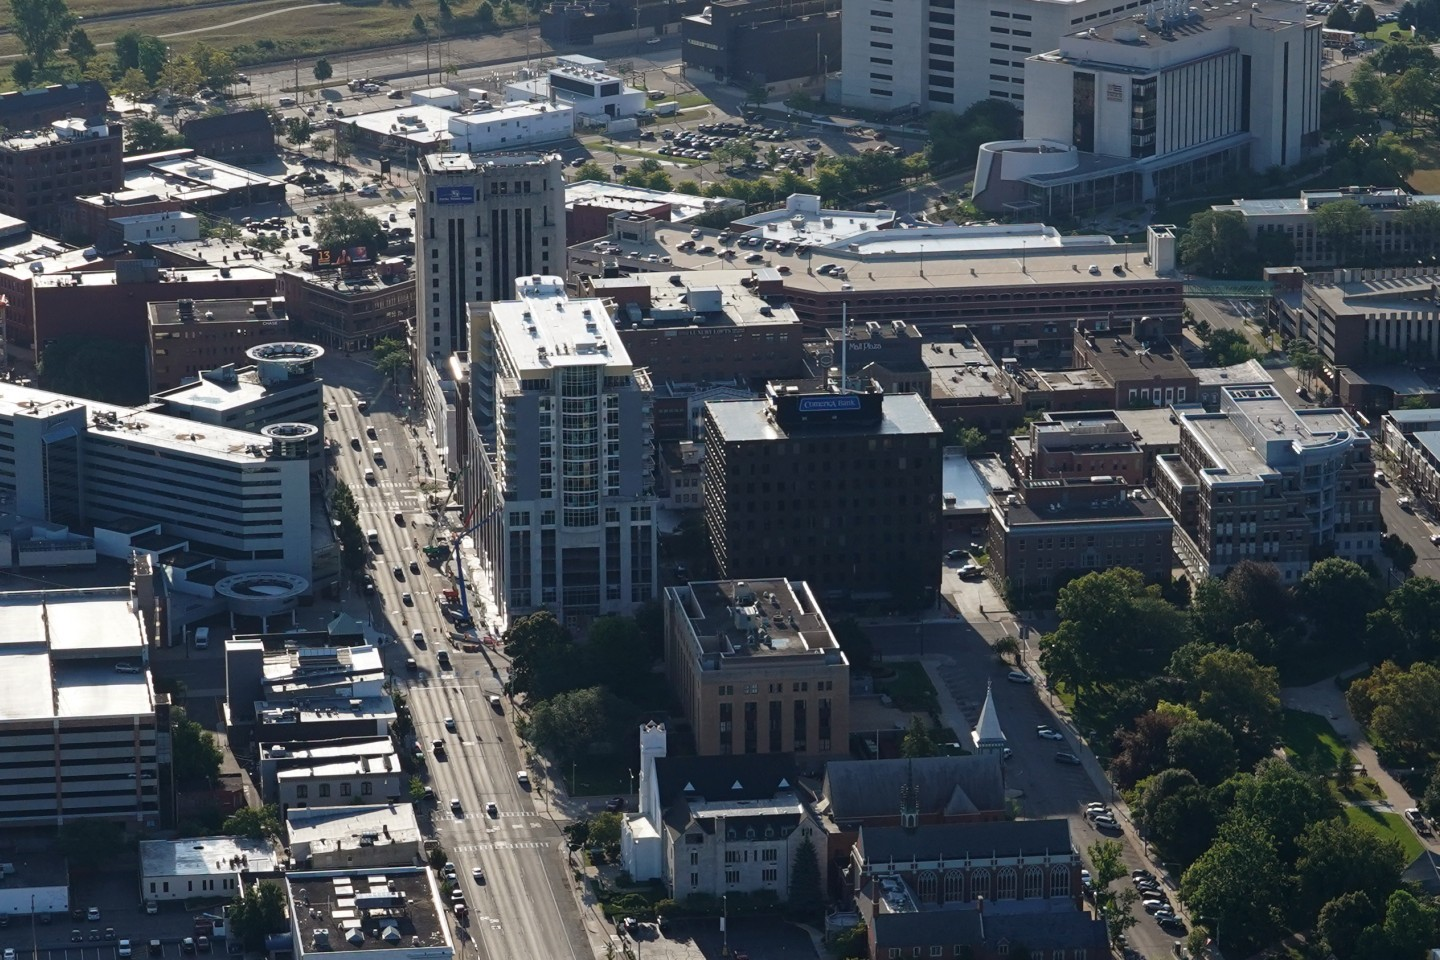 Downtown Kalamazoo from a drone.